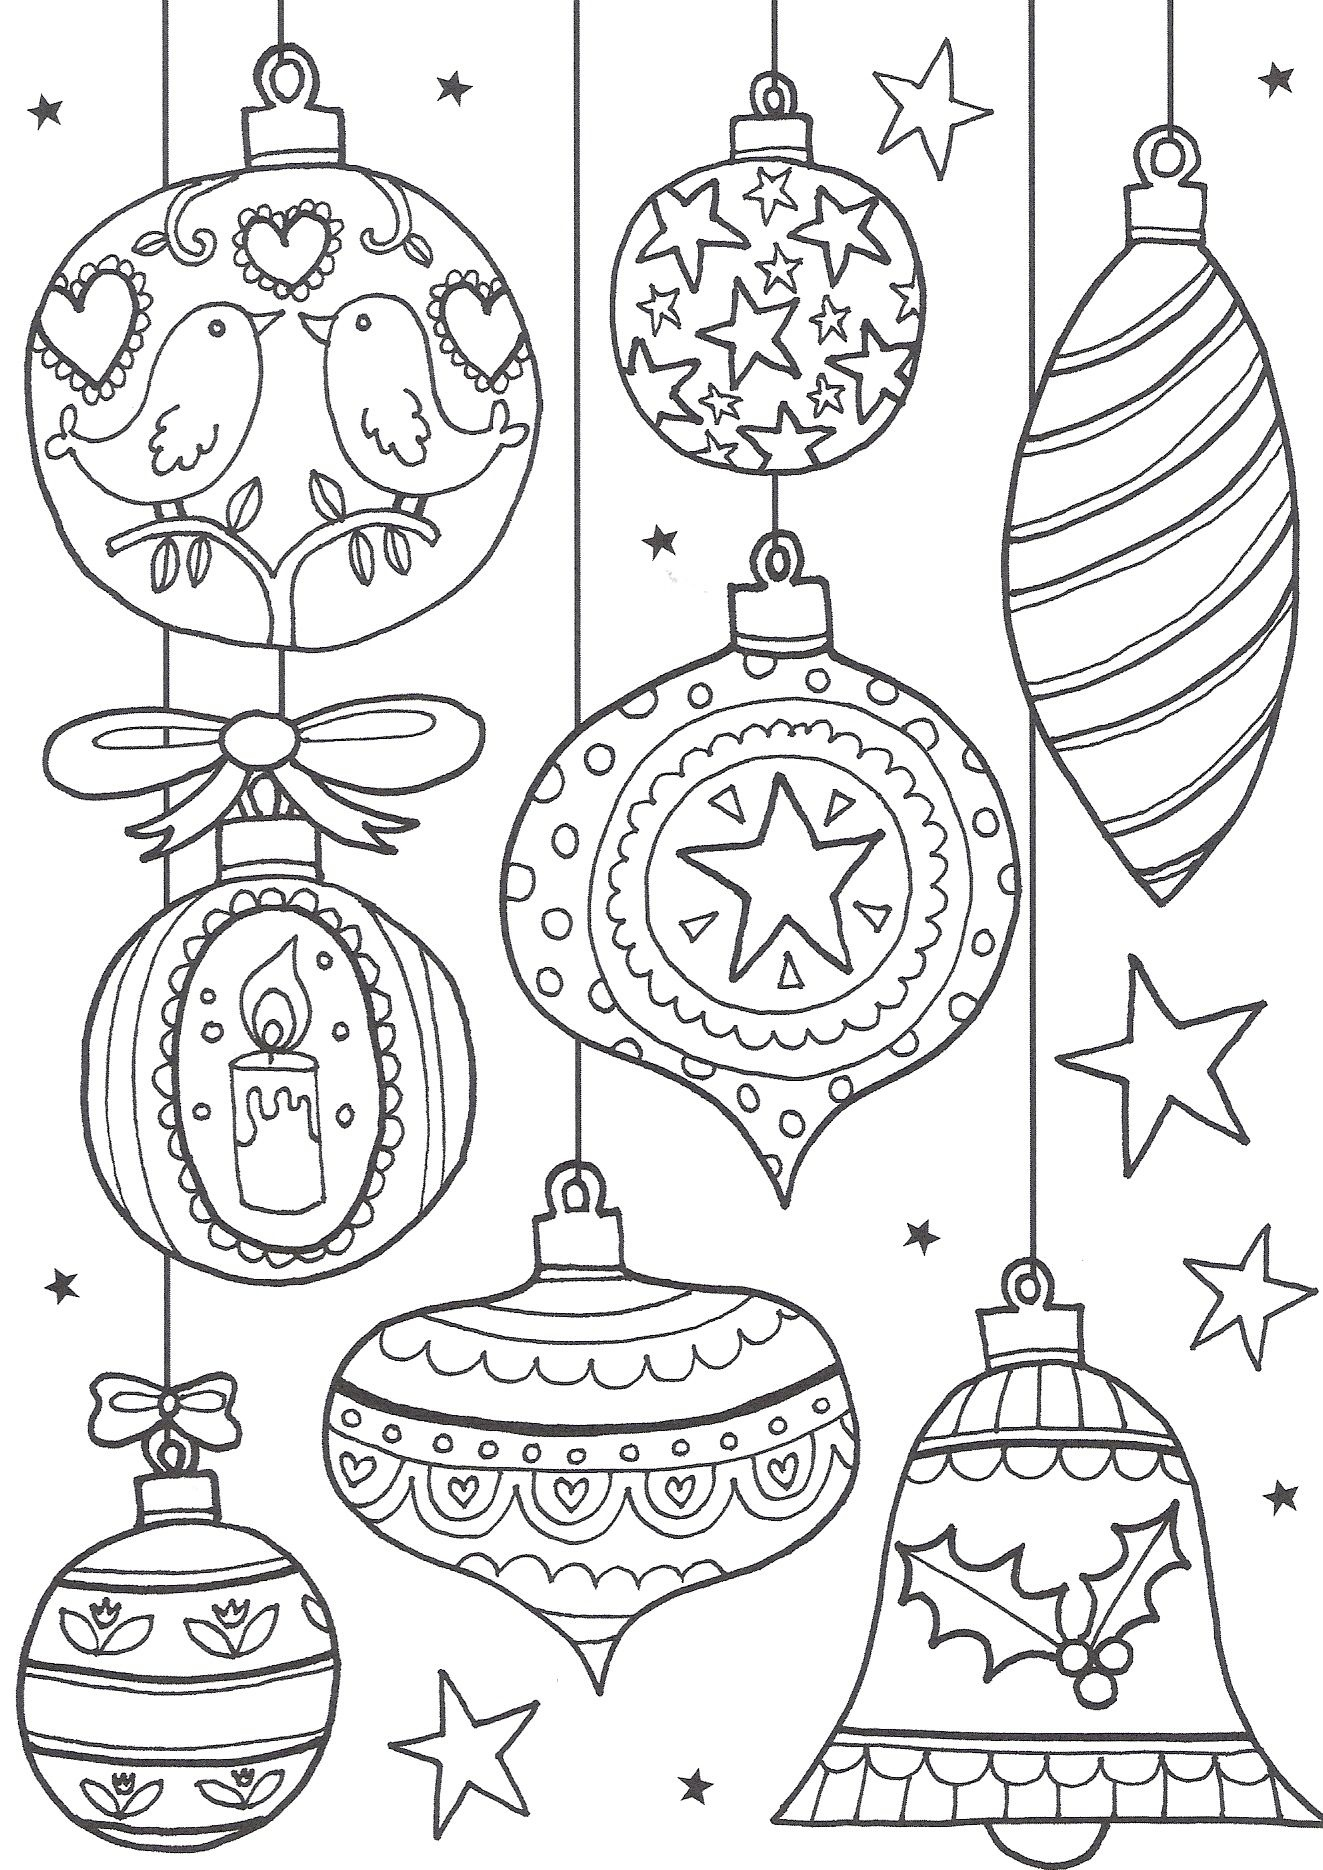 Free Christmas Colouring Pages For Adults – The Ultimate Roundup - Free Printable Christmas Coloring Sheets